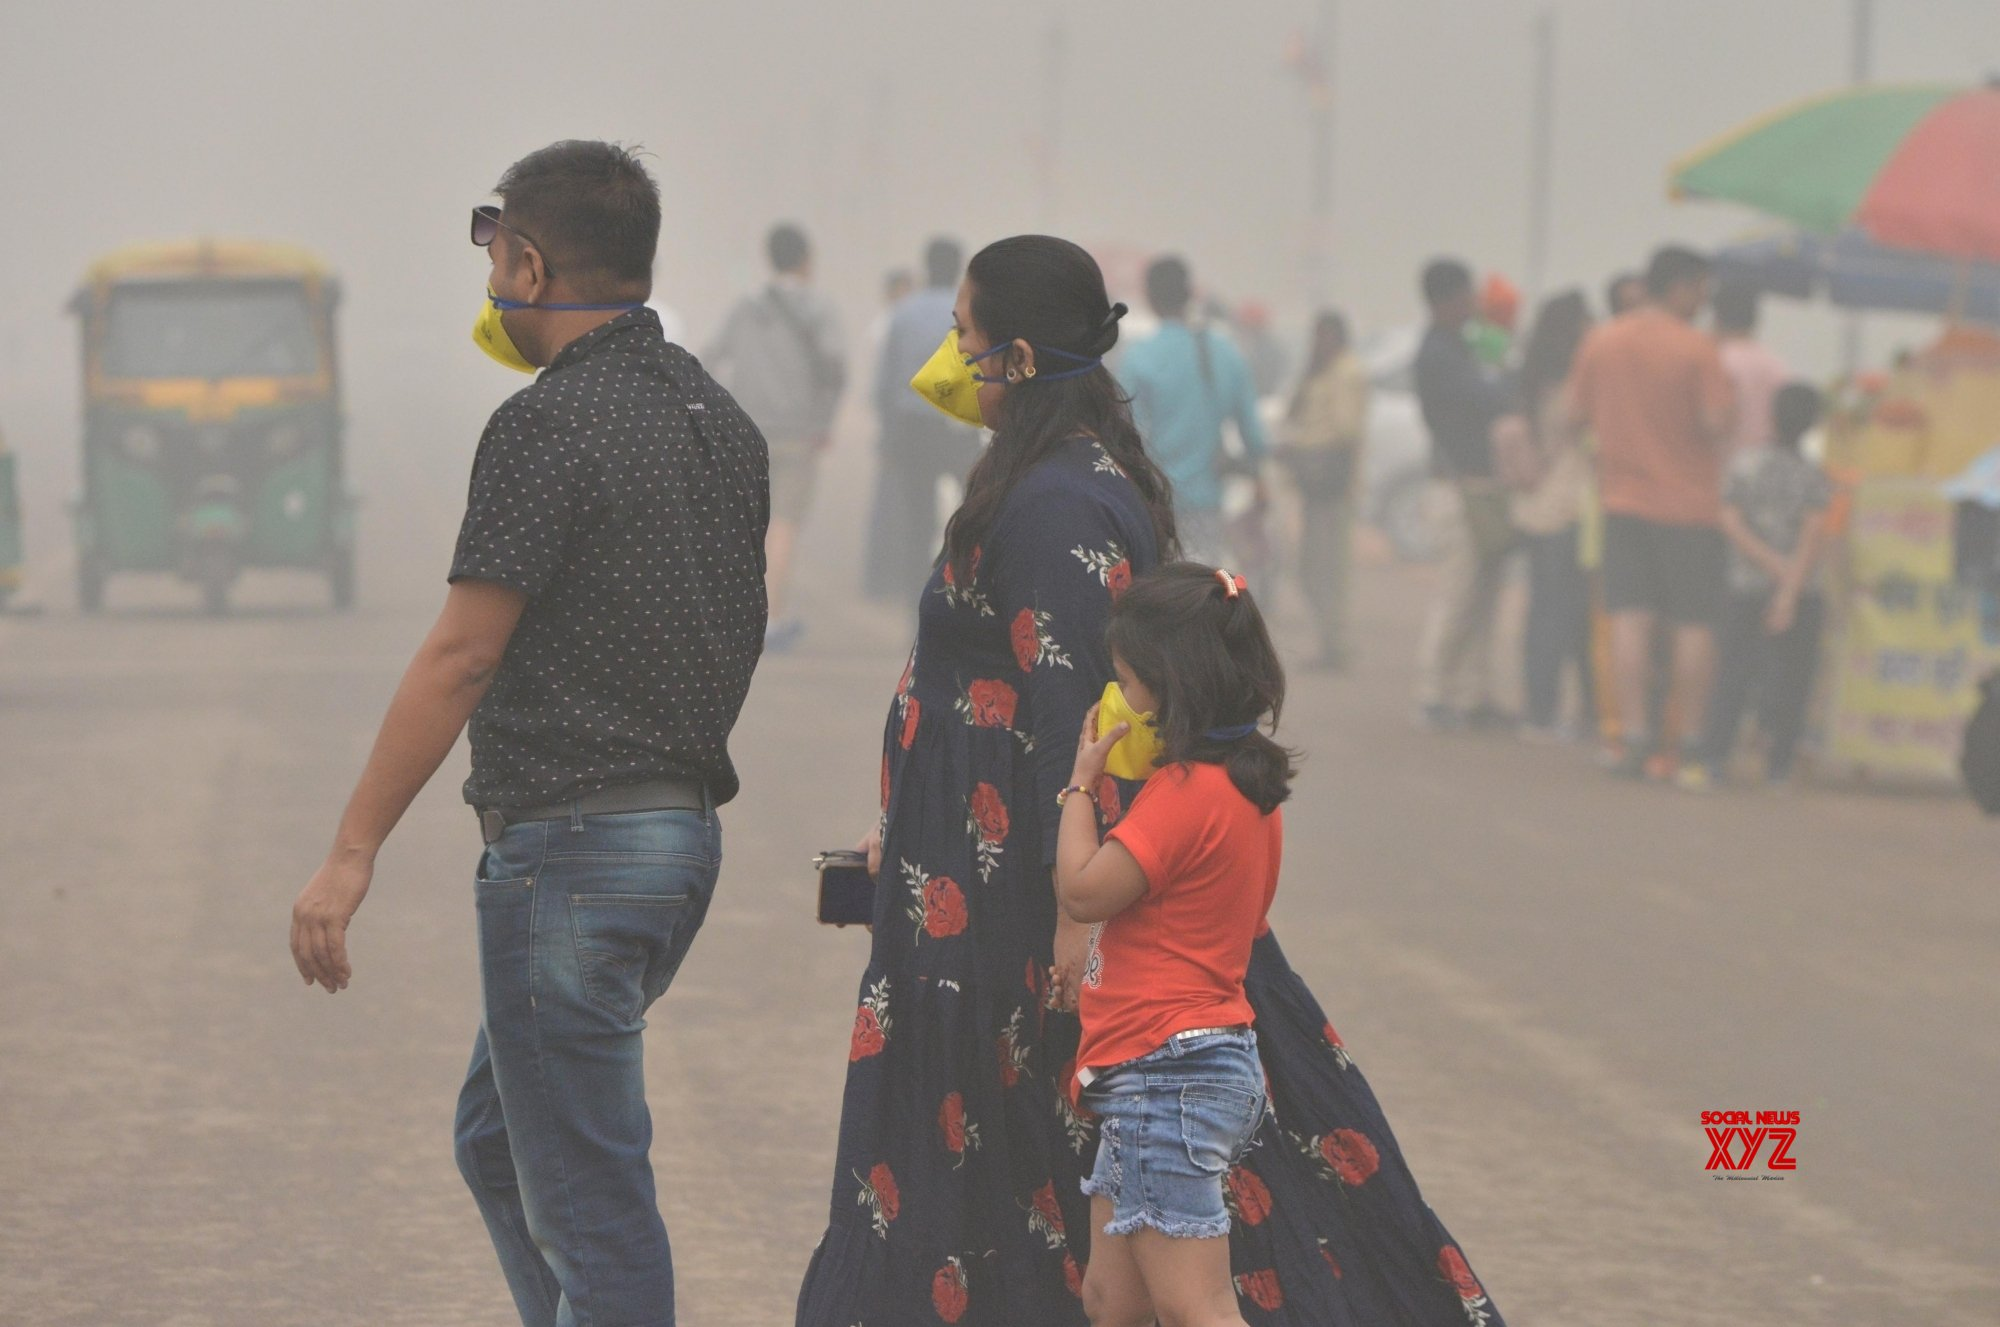 Air pollution may drive upcoming Delhi assembly polls